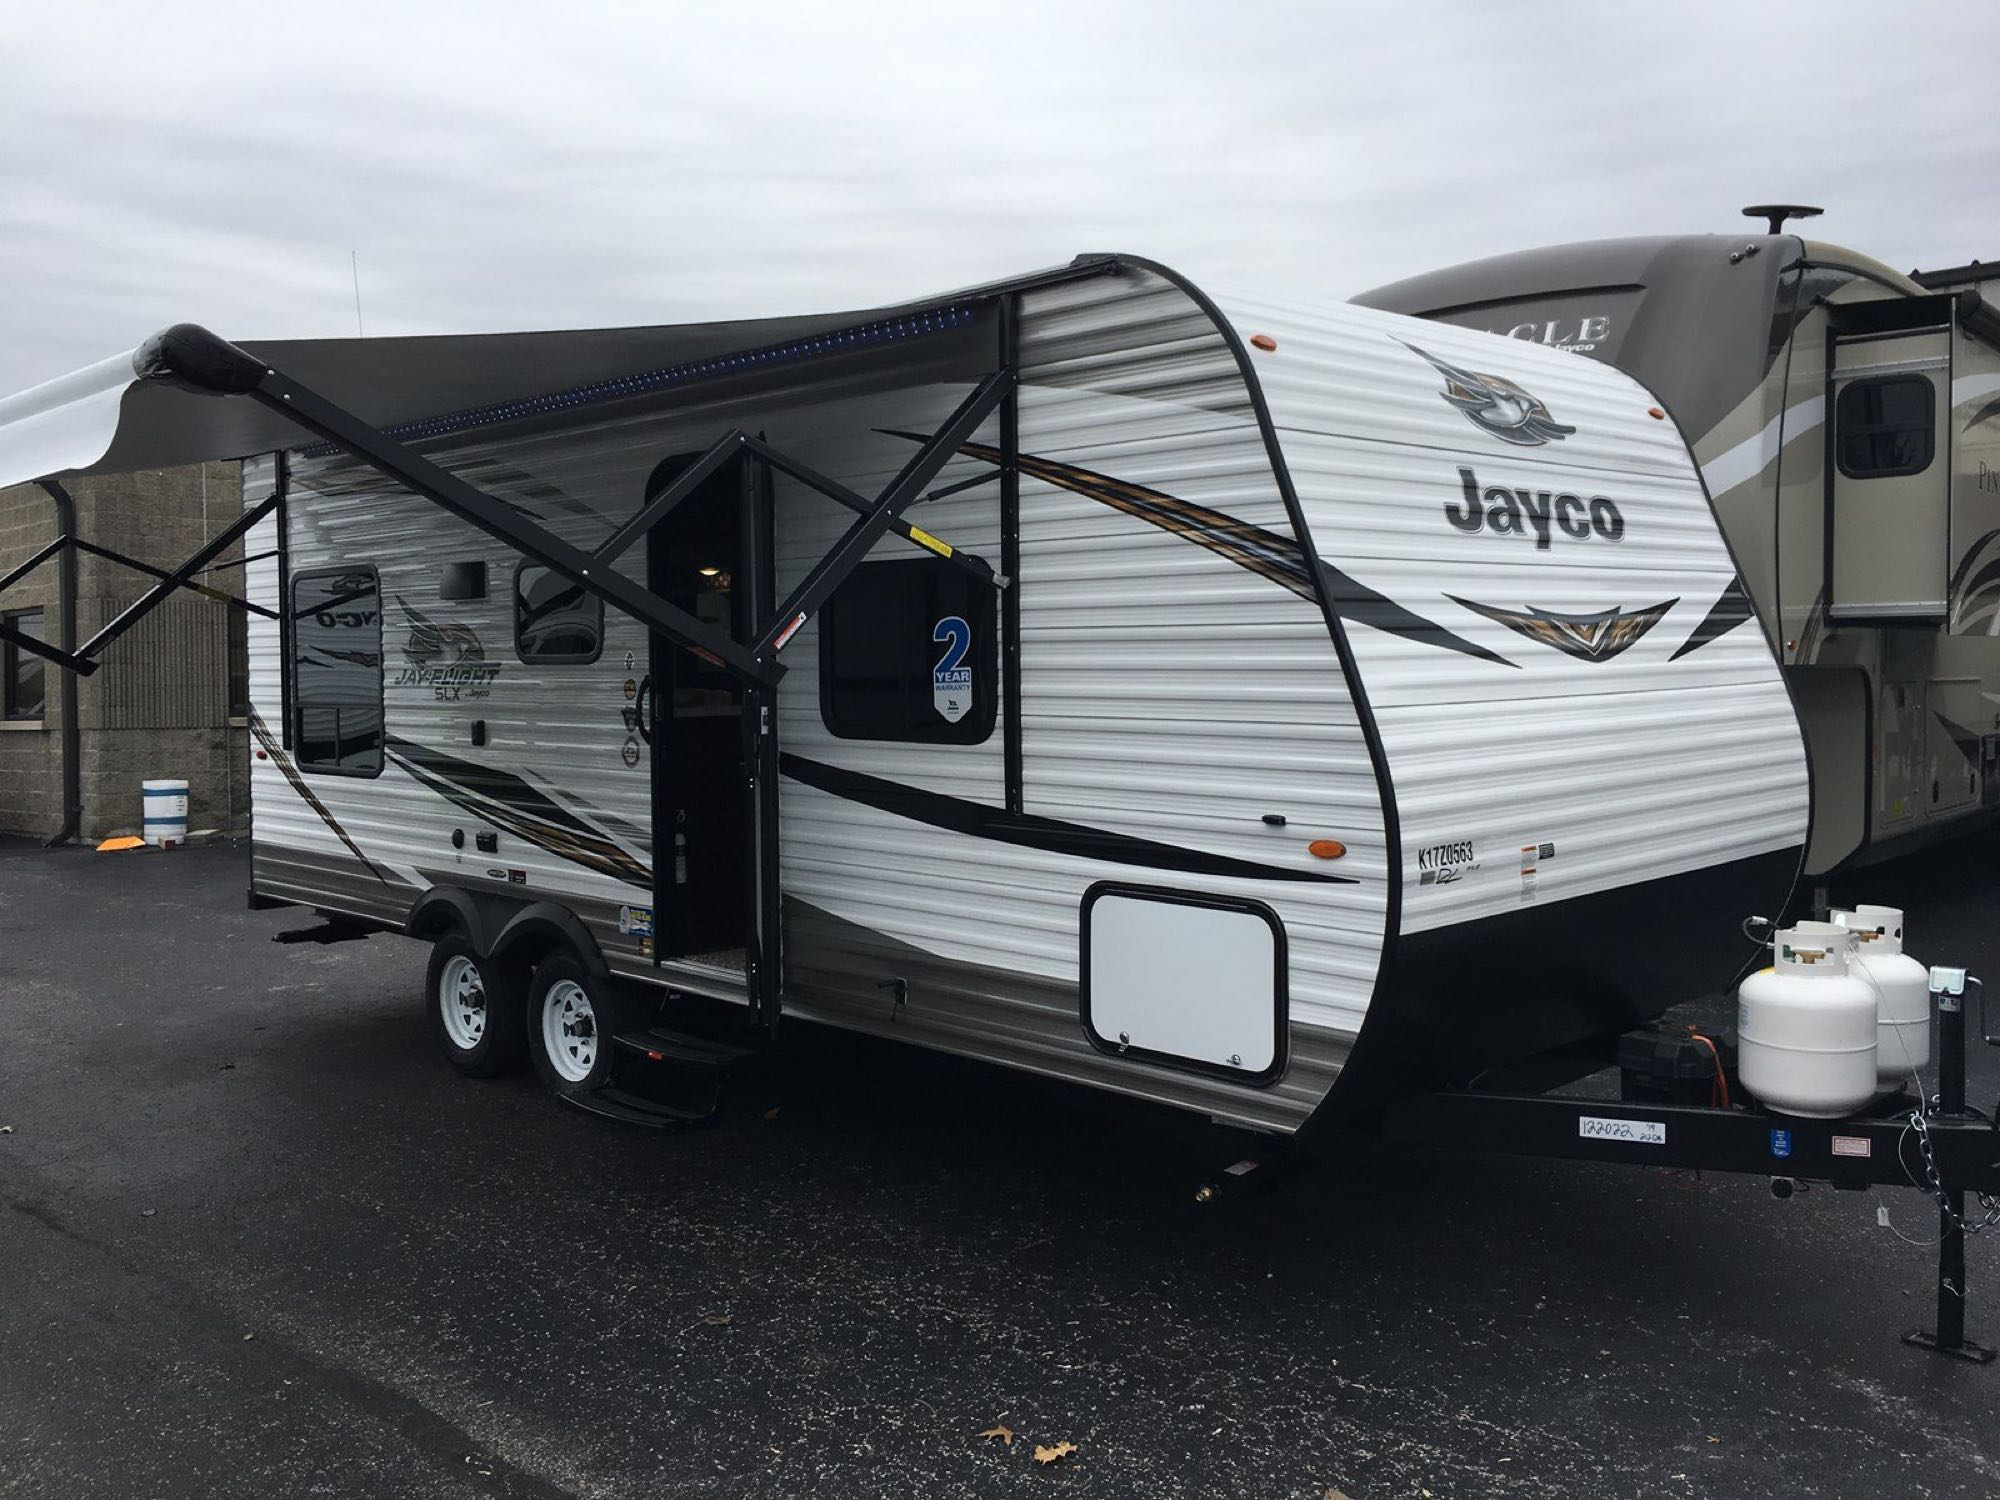 This Jayco 212QB is a 21 foot box with power awning, great windows, storage and tandem axles. weighs 4200lbs dry weight. Jayco Jay Flight 212 QB 2018